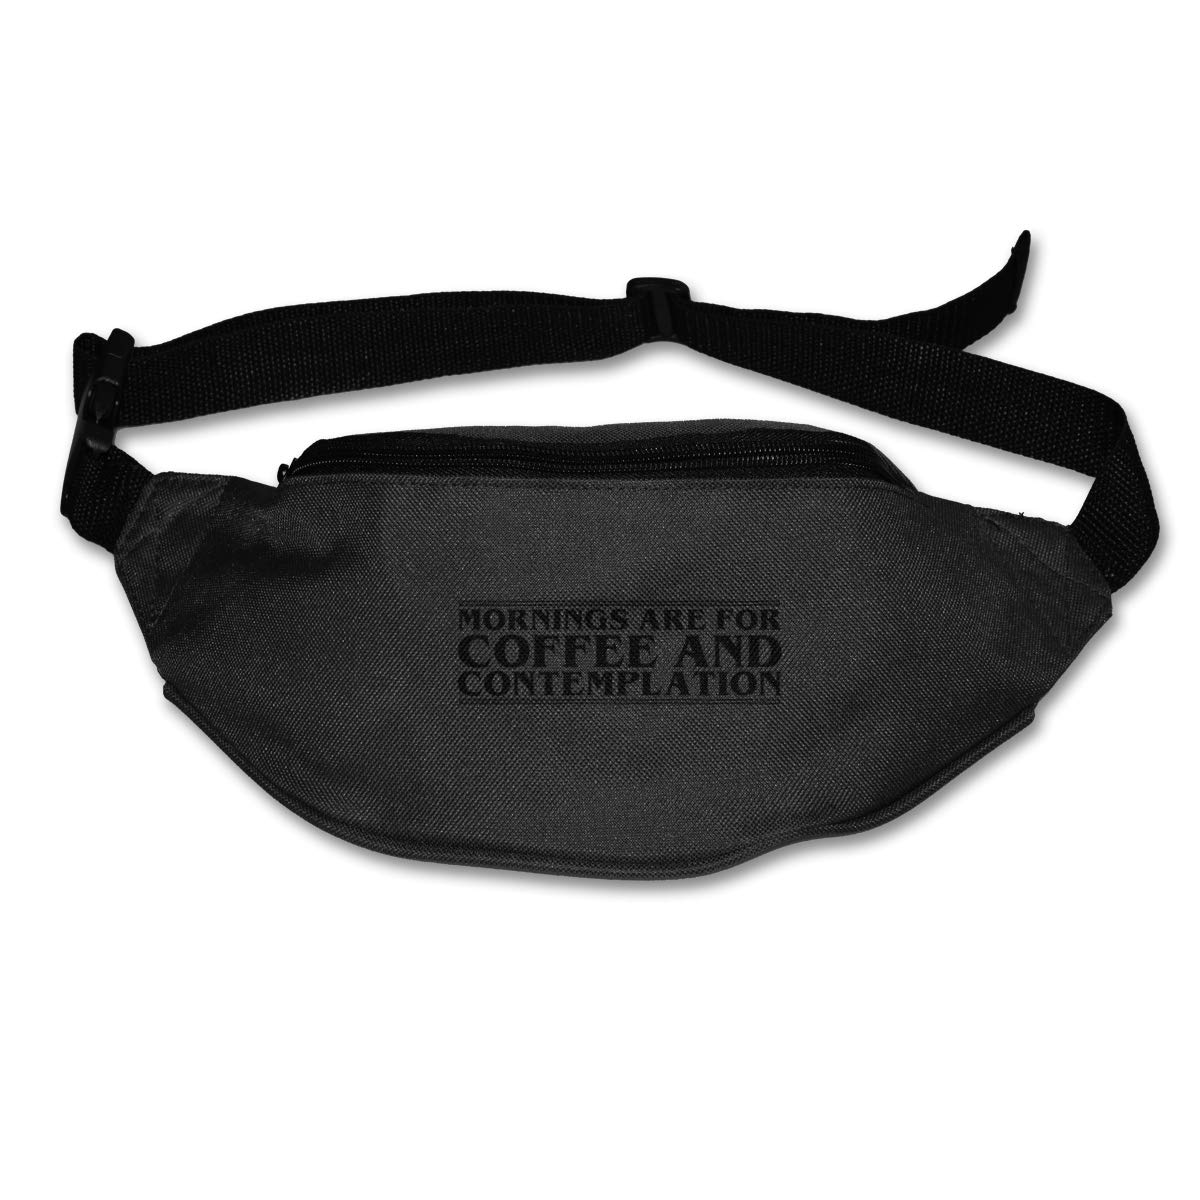 Mornings Are Coffee And Contemplation Sport Waist Packs Fanny Pack Travel